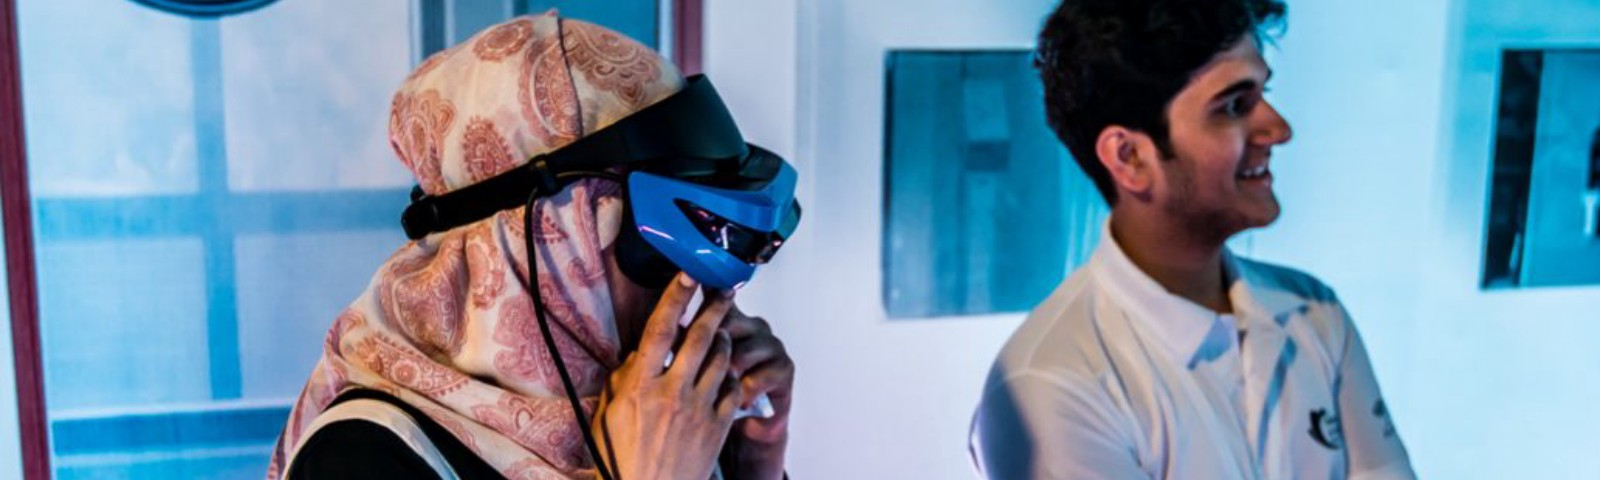 Tech Trends VR Training Varkey Foundation Global Education and Skills Forum HoloLens Haptic Surgical Training HealthTech